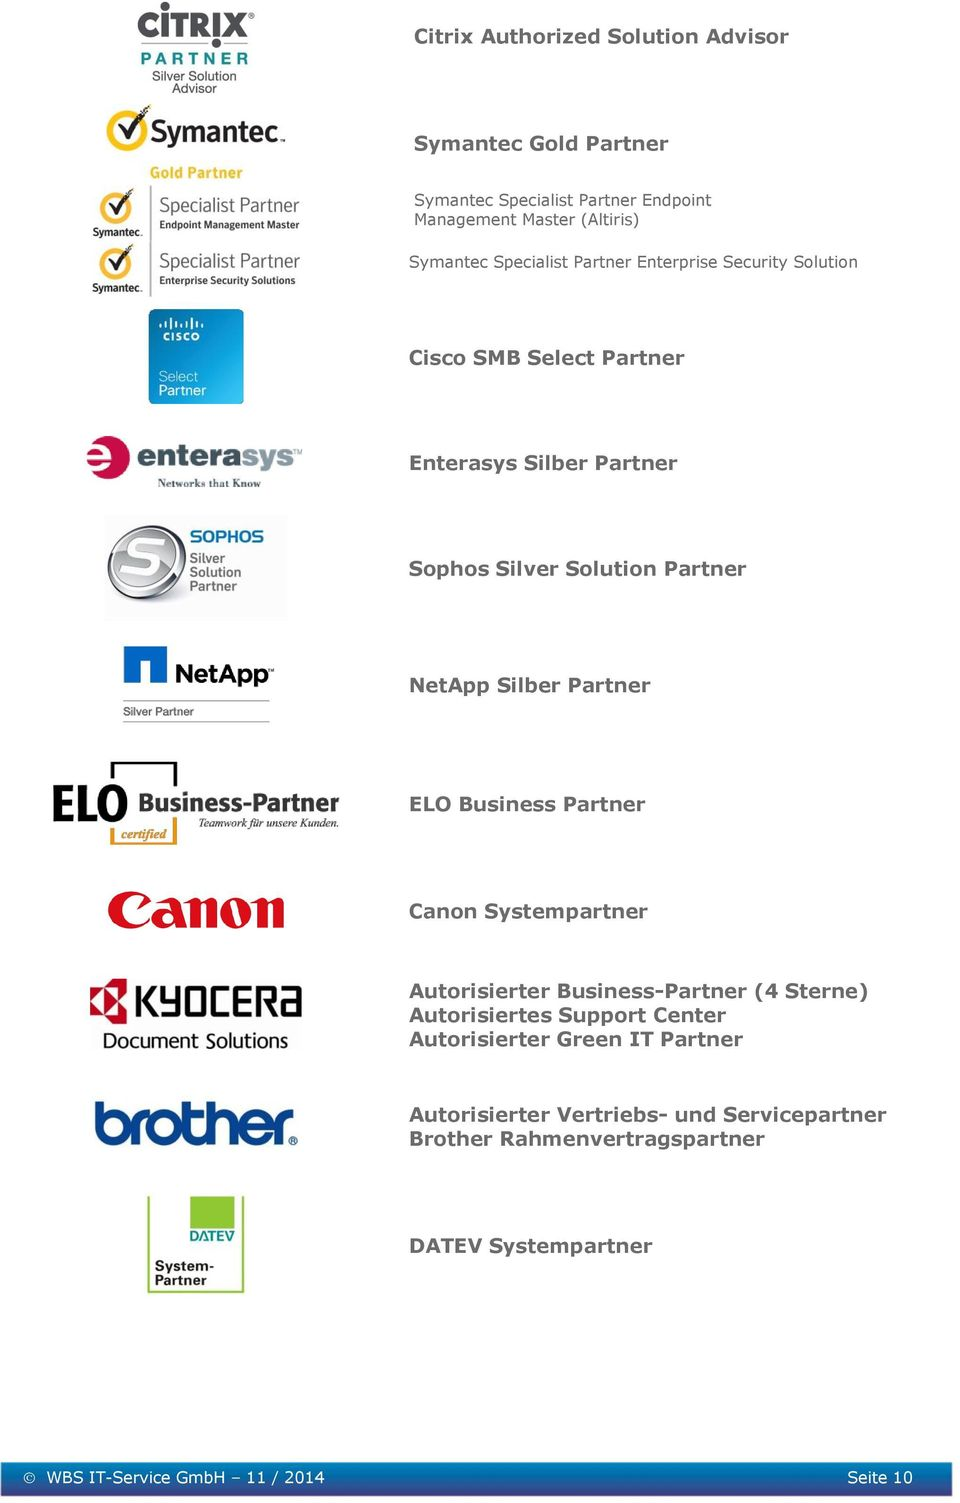 Silber Partner ELO Business Partner Canon Systempartner Autorisierter Business-Partner (4 Sterne) Autorisiertes Support Center